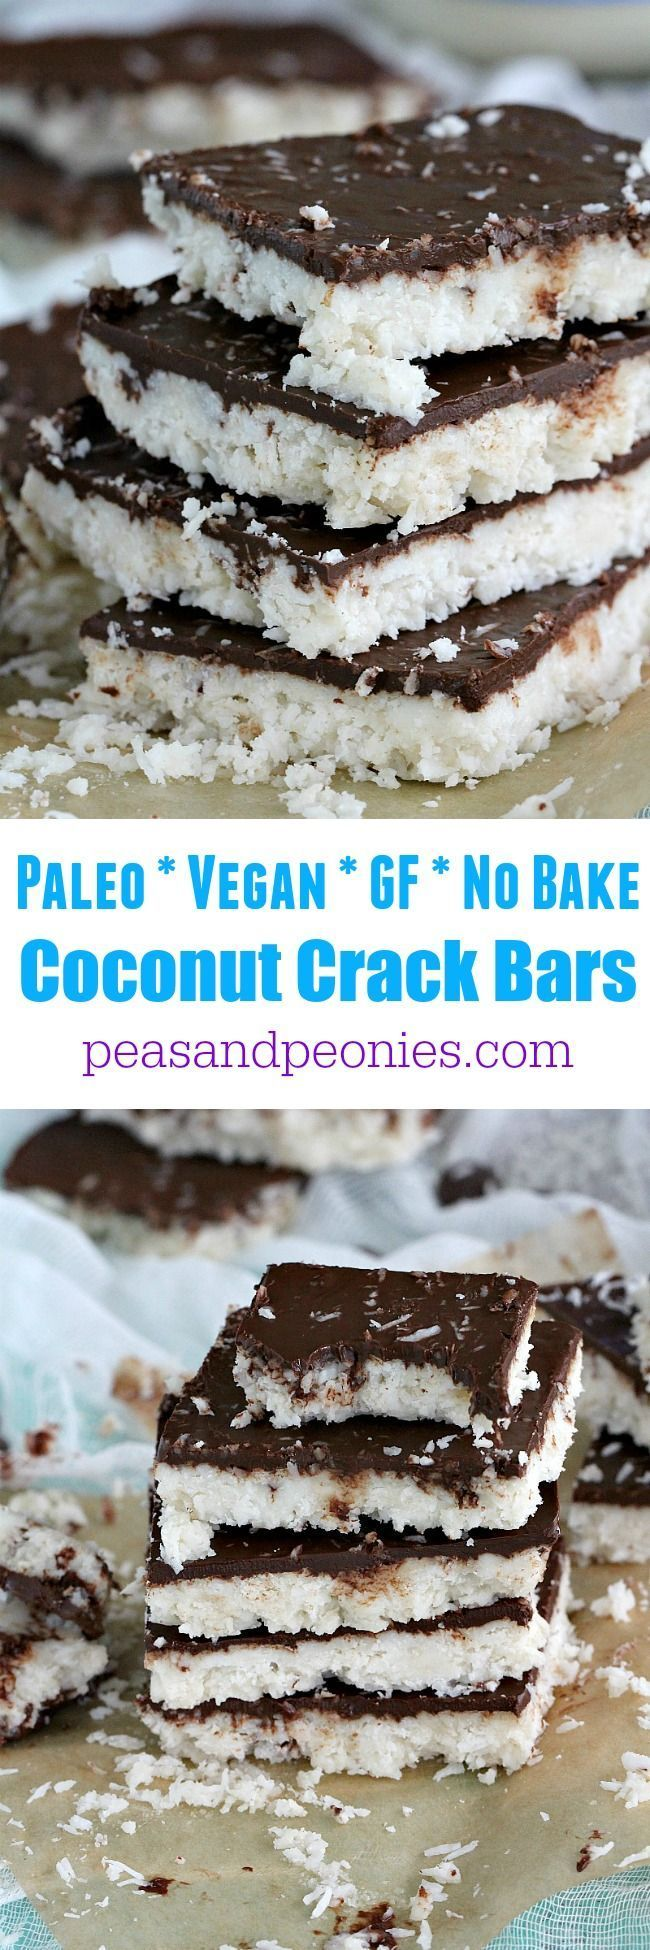 Paleo, Vegan, Gluten Free and No Bake, these Chocolate Covered Coconut Crack Bars are made with only 6 ingredients and it will take you only 5 mins!